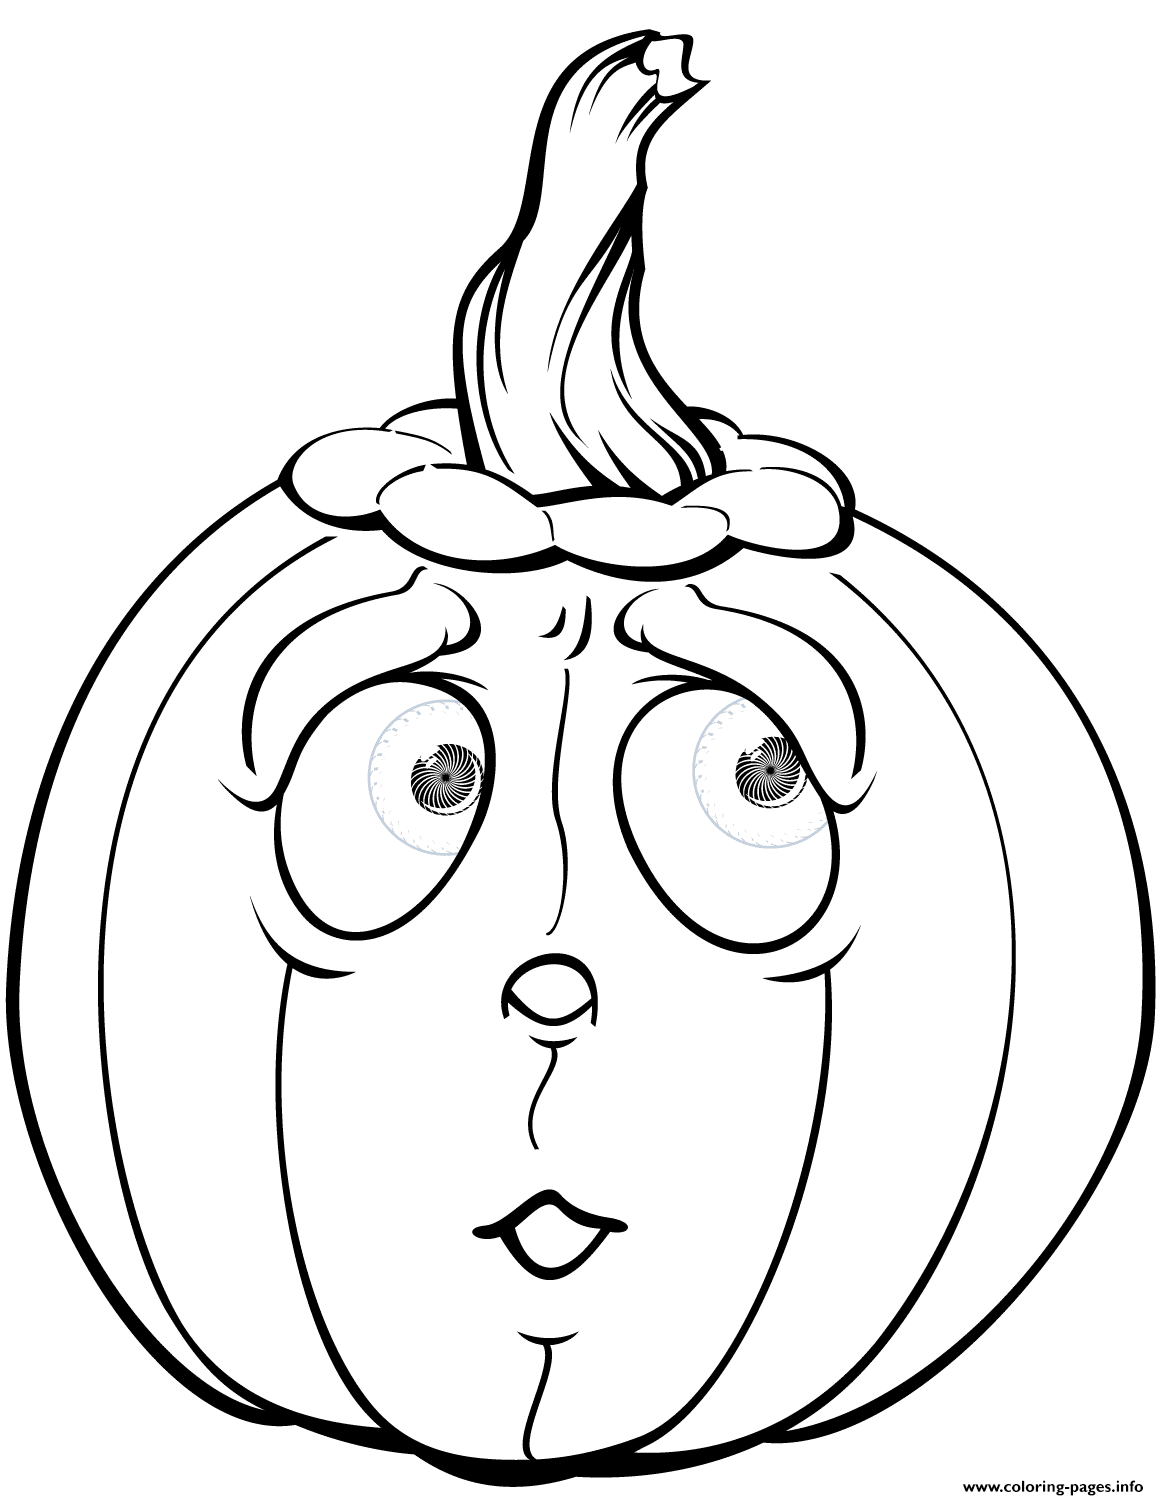 coloring pumpkin halloween clipart scary pumpkin halloween coloring pages printable coloring pumpkin halloween clipart